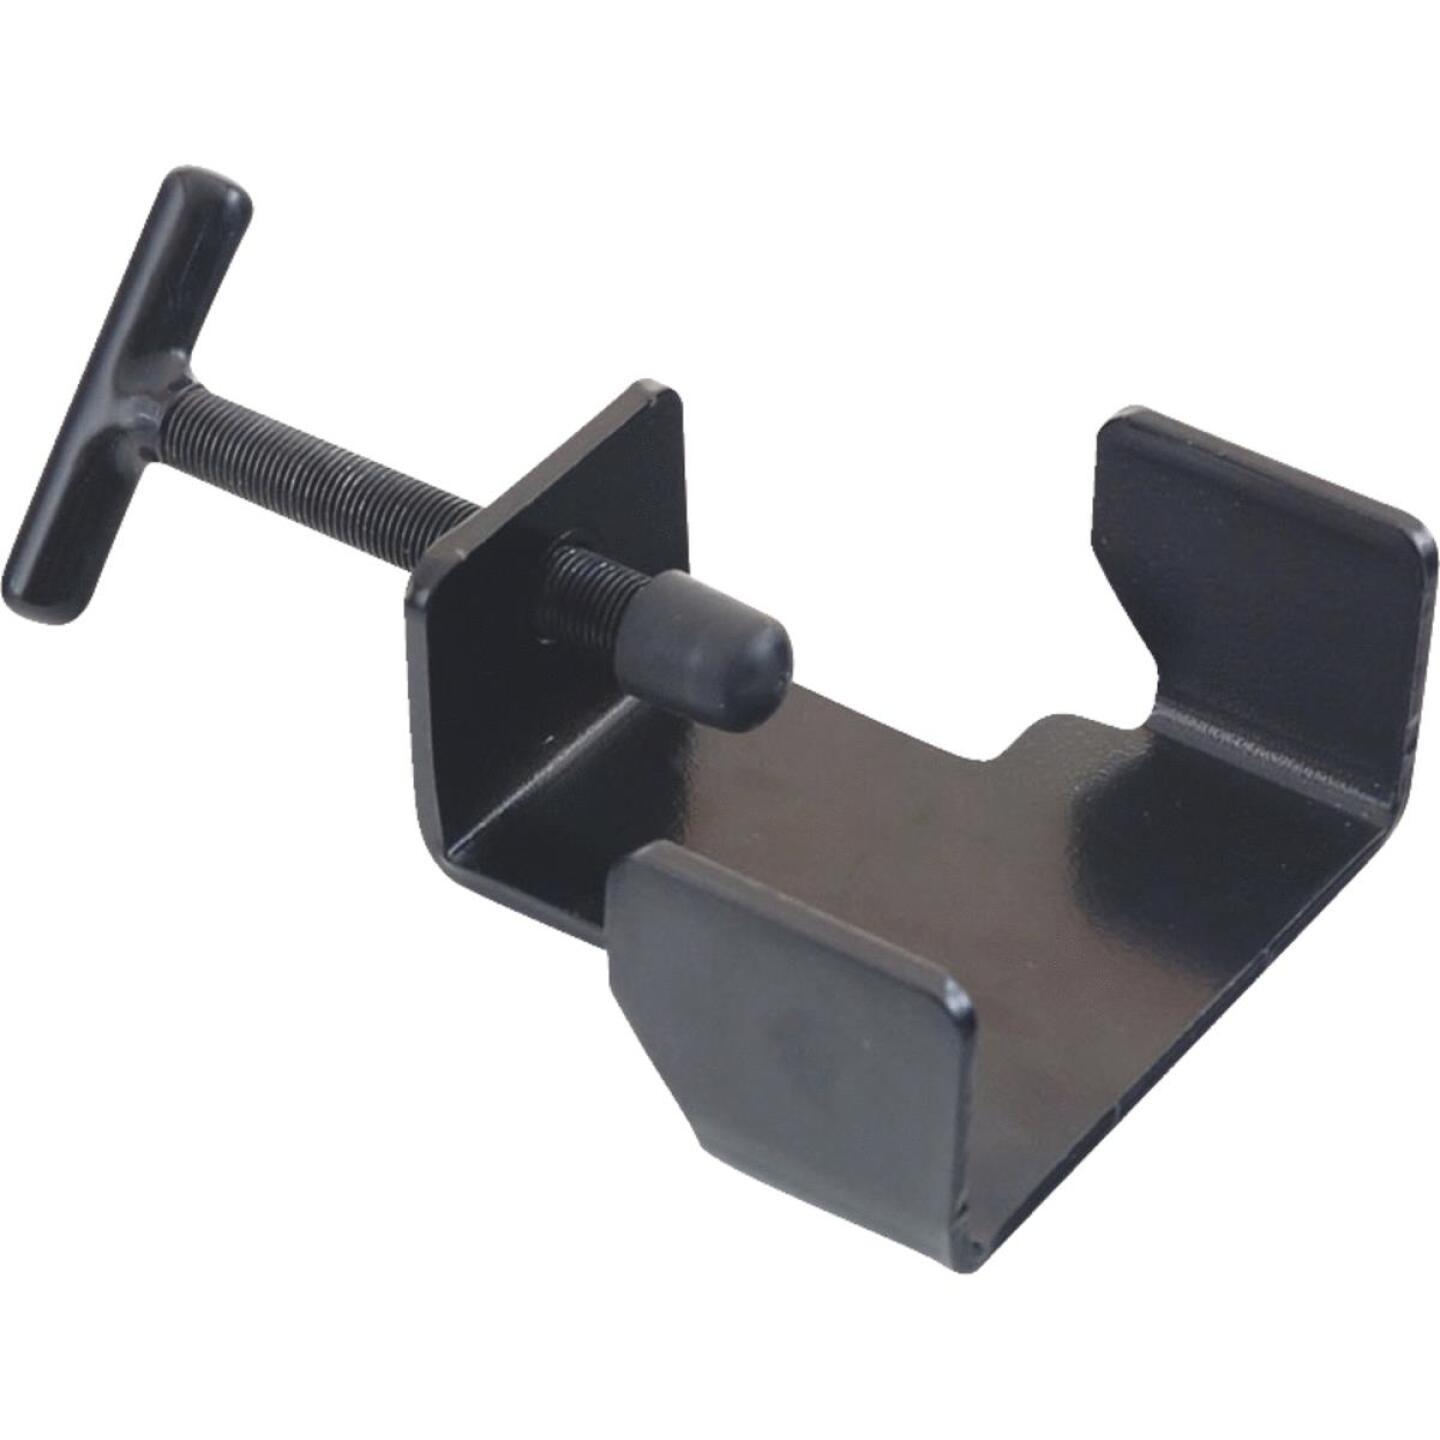 Arnold Lawn Mower Blade Clamp Image 1